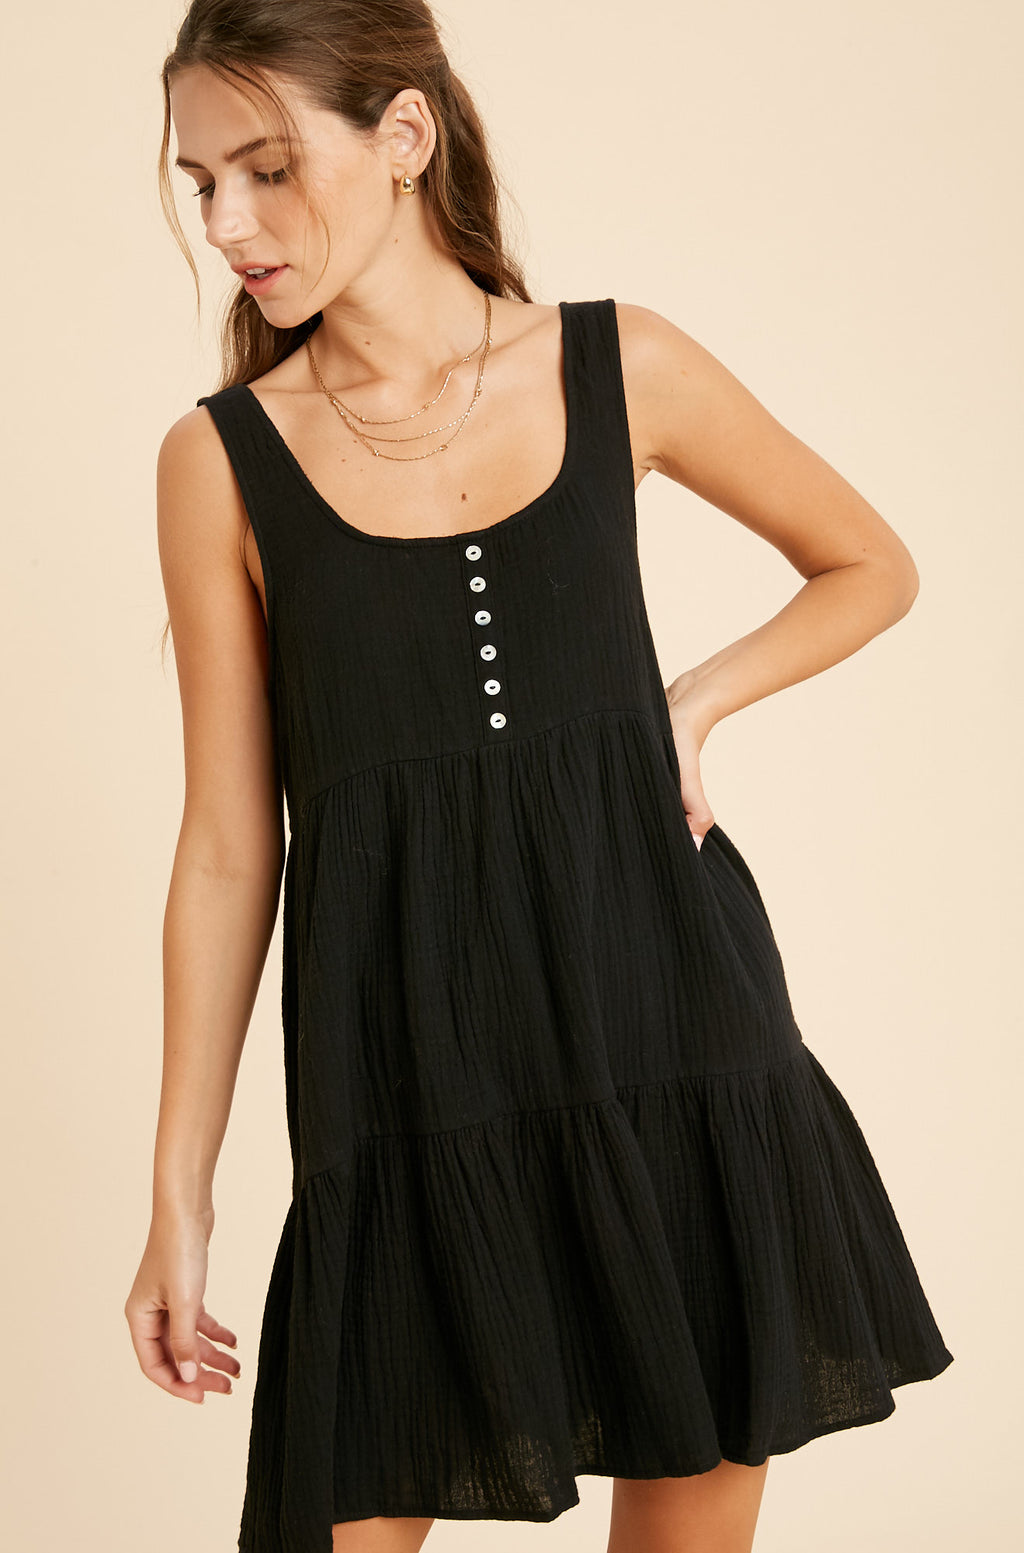 Gilly Cotton Babydoll Dress - Black